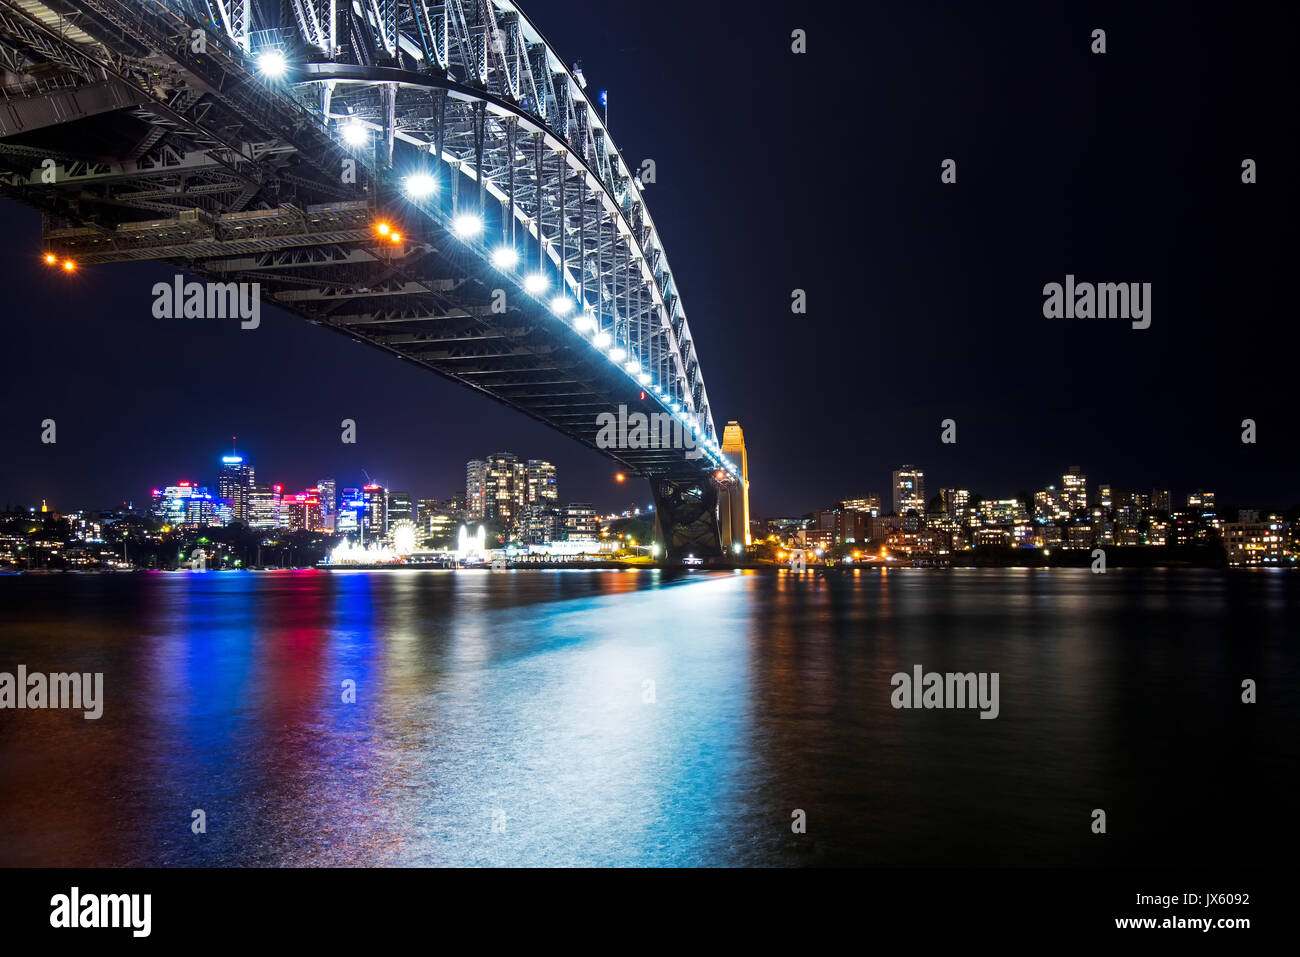 Colorful light reflection at Sydney Harbour Bridge at Night from Circular Quay, Sydney, Australia - Stock Image